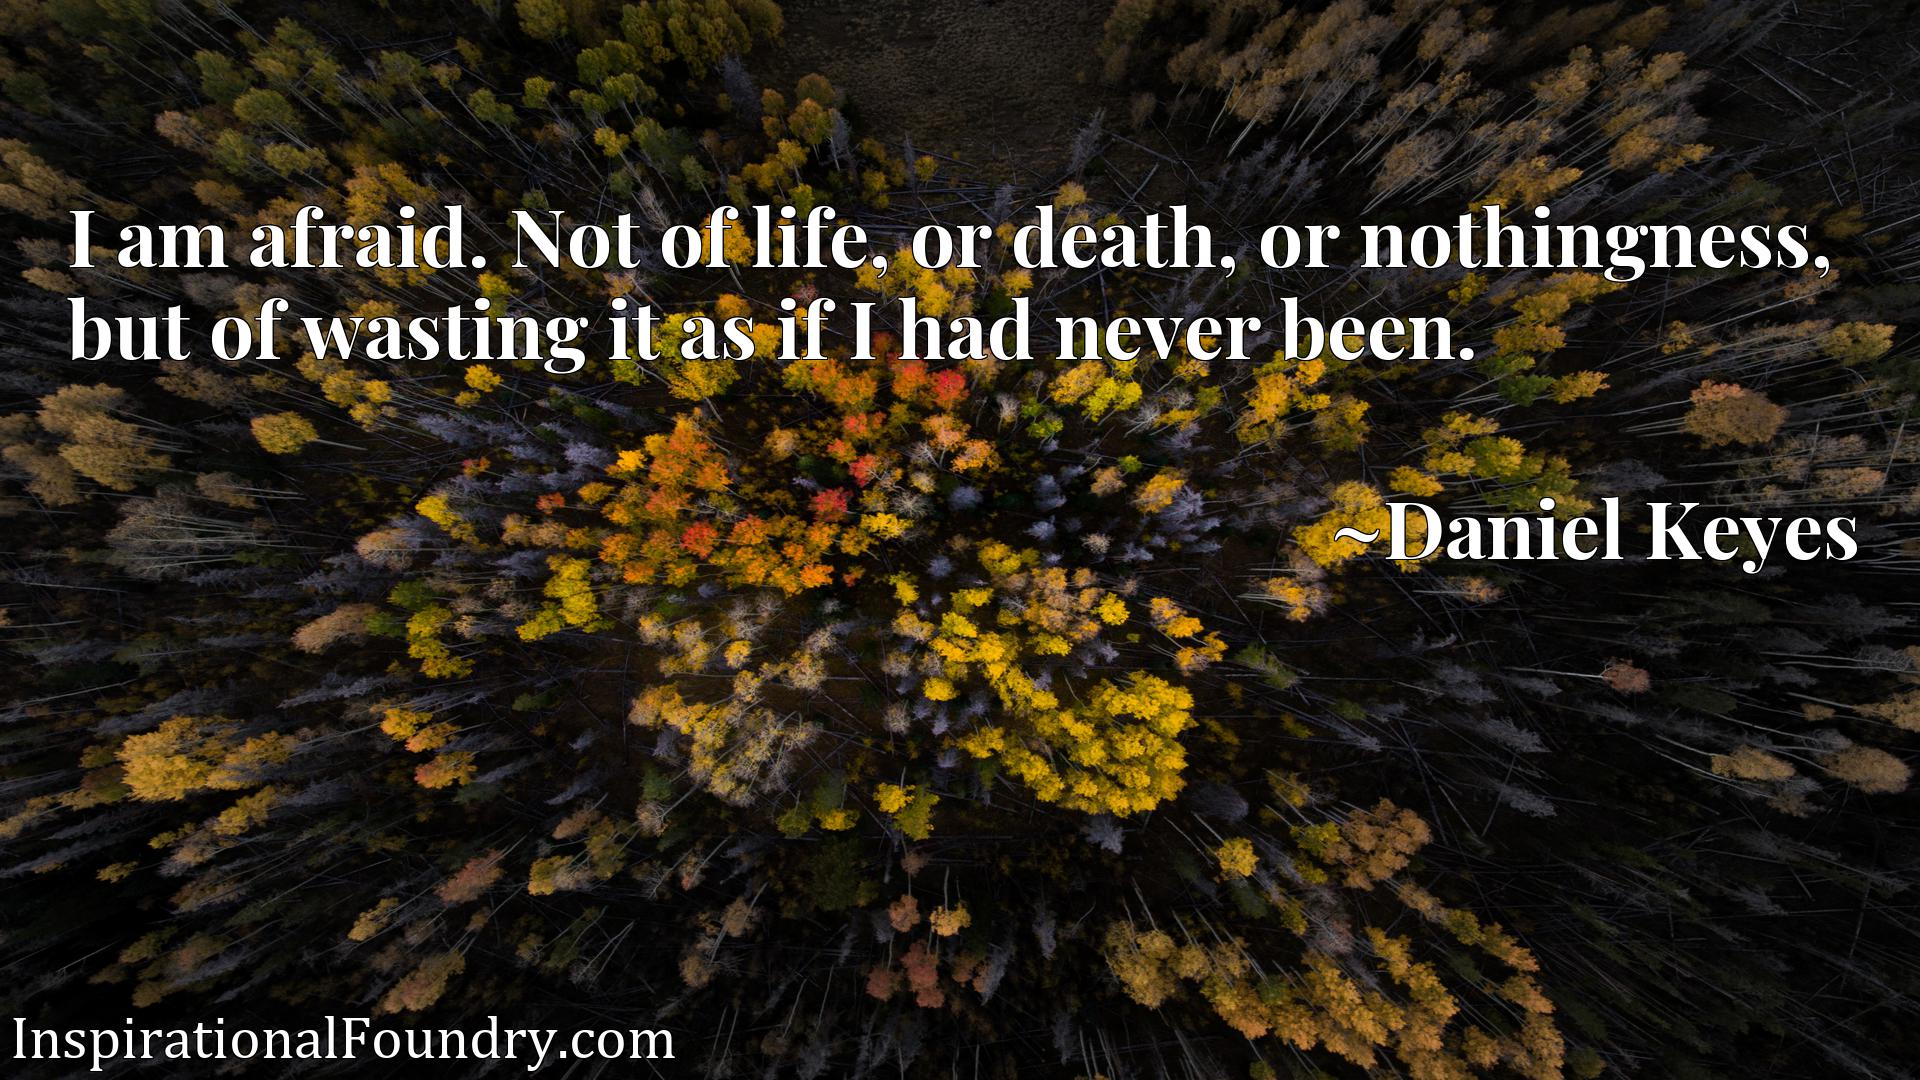 I am afraid. Not of life, or death, or nothingness, but of wasting it as if I had never been.